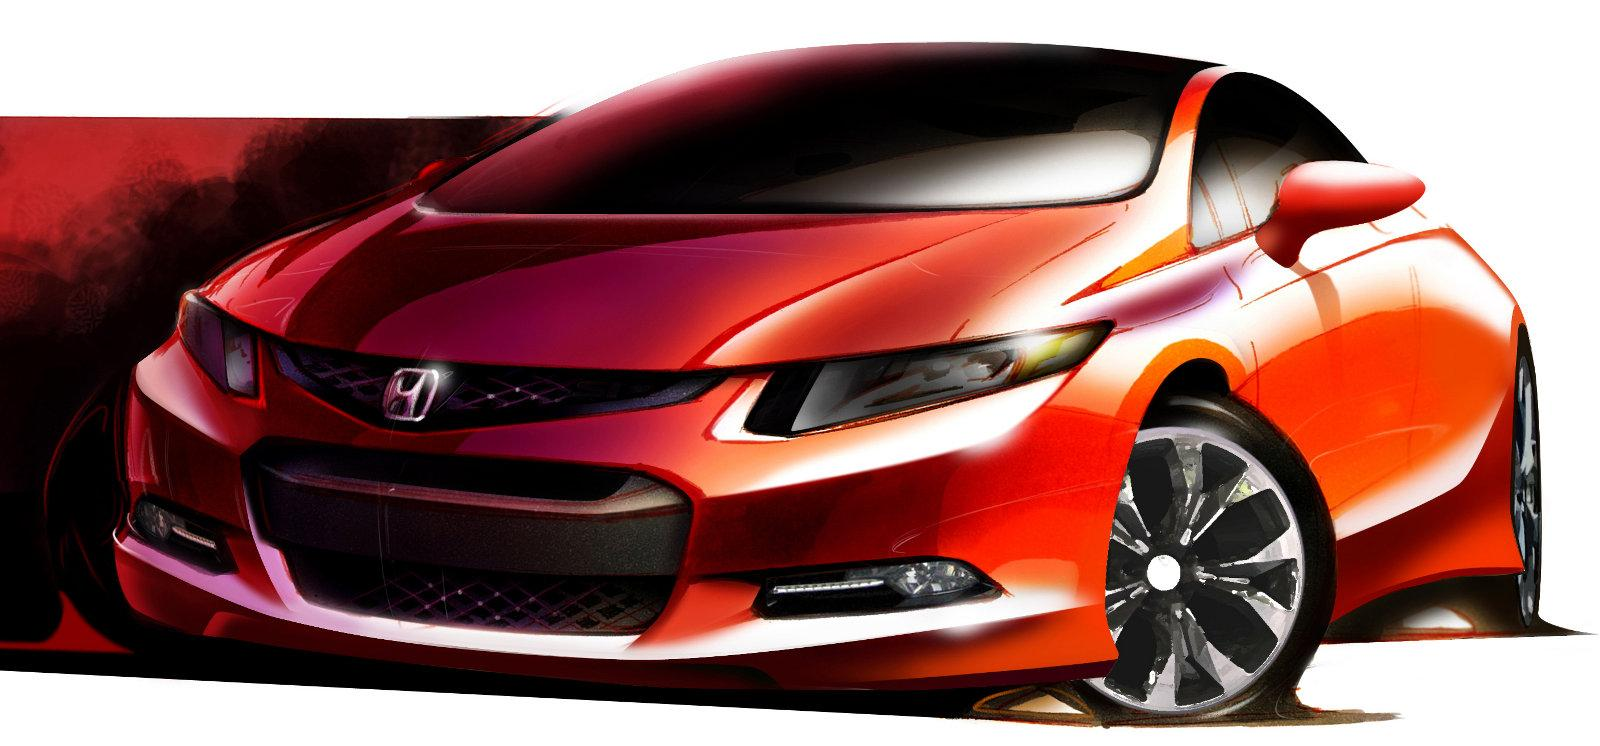 Honda Civic Concept 2011